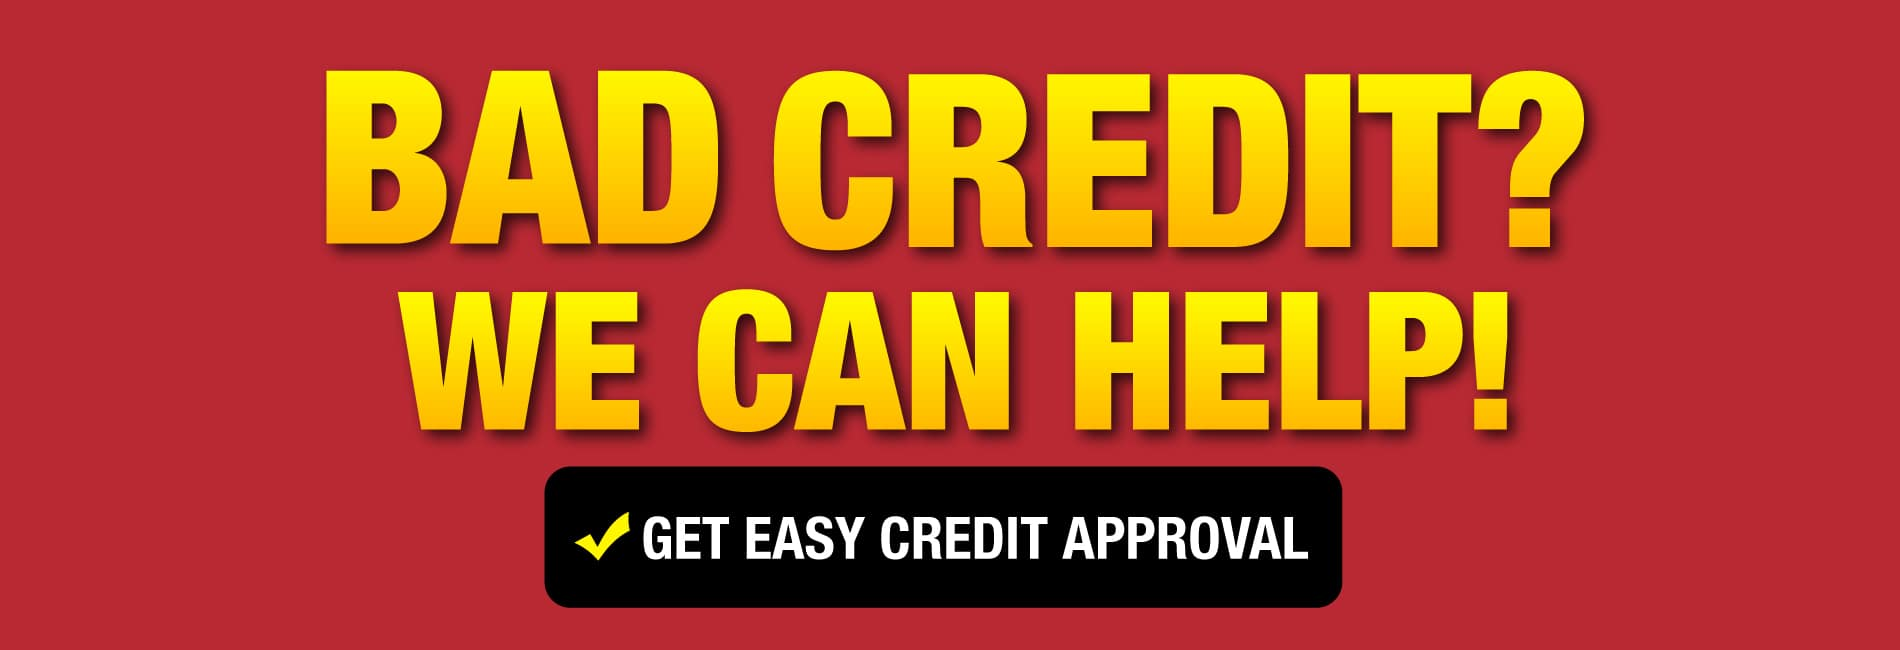 Bad Credit? Star Nissan can help!